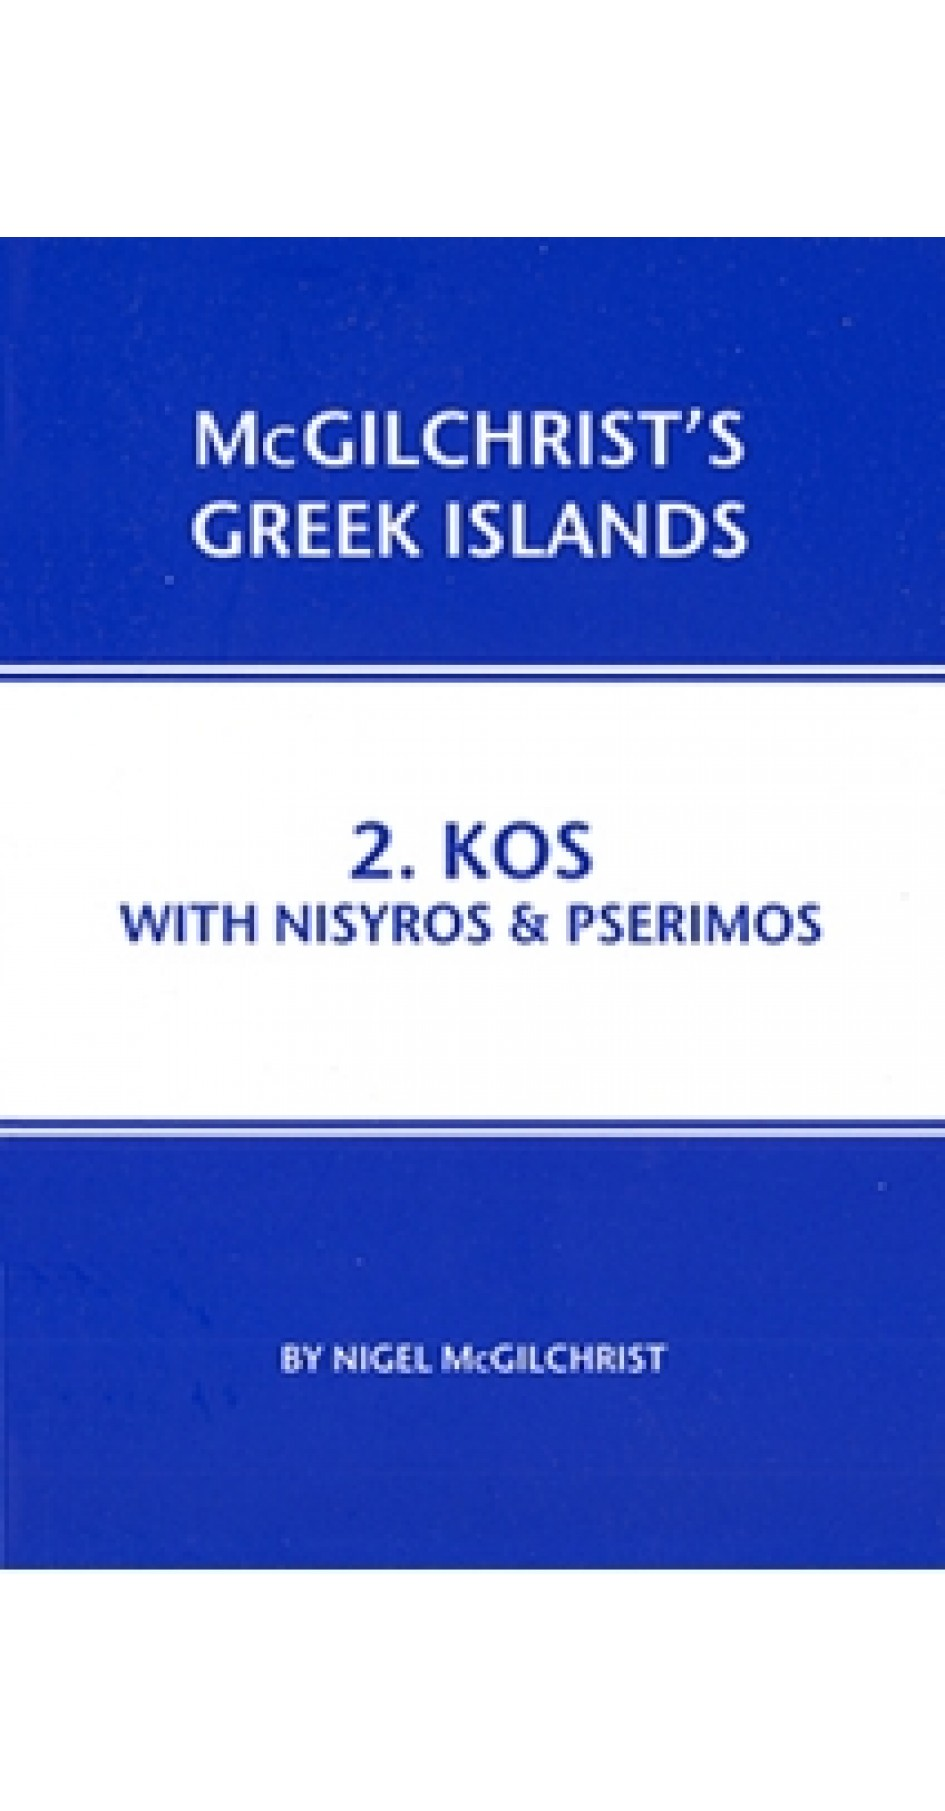 Kos with Nisyros and Pserimos